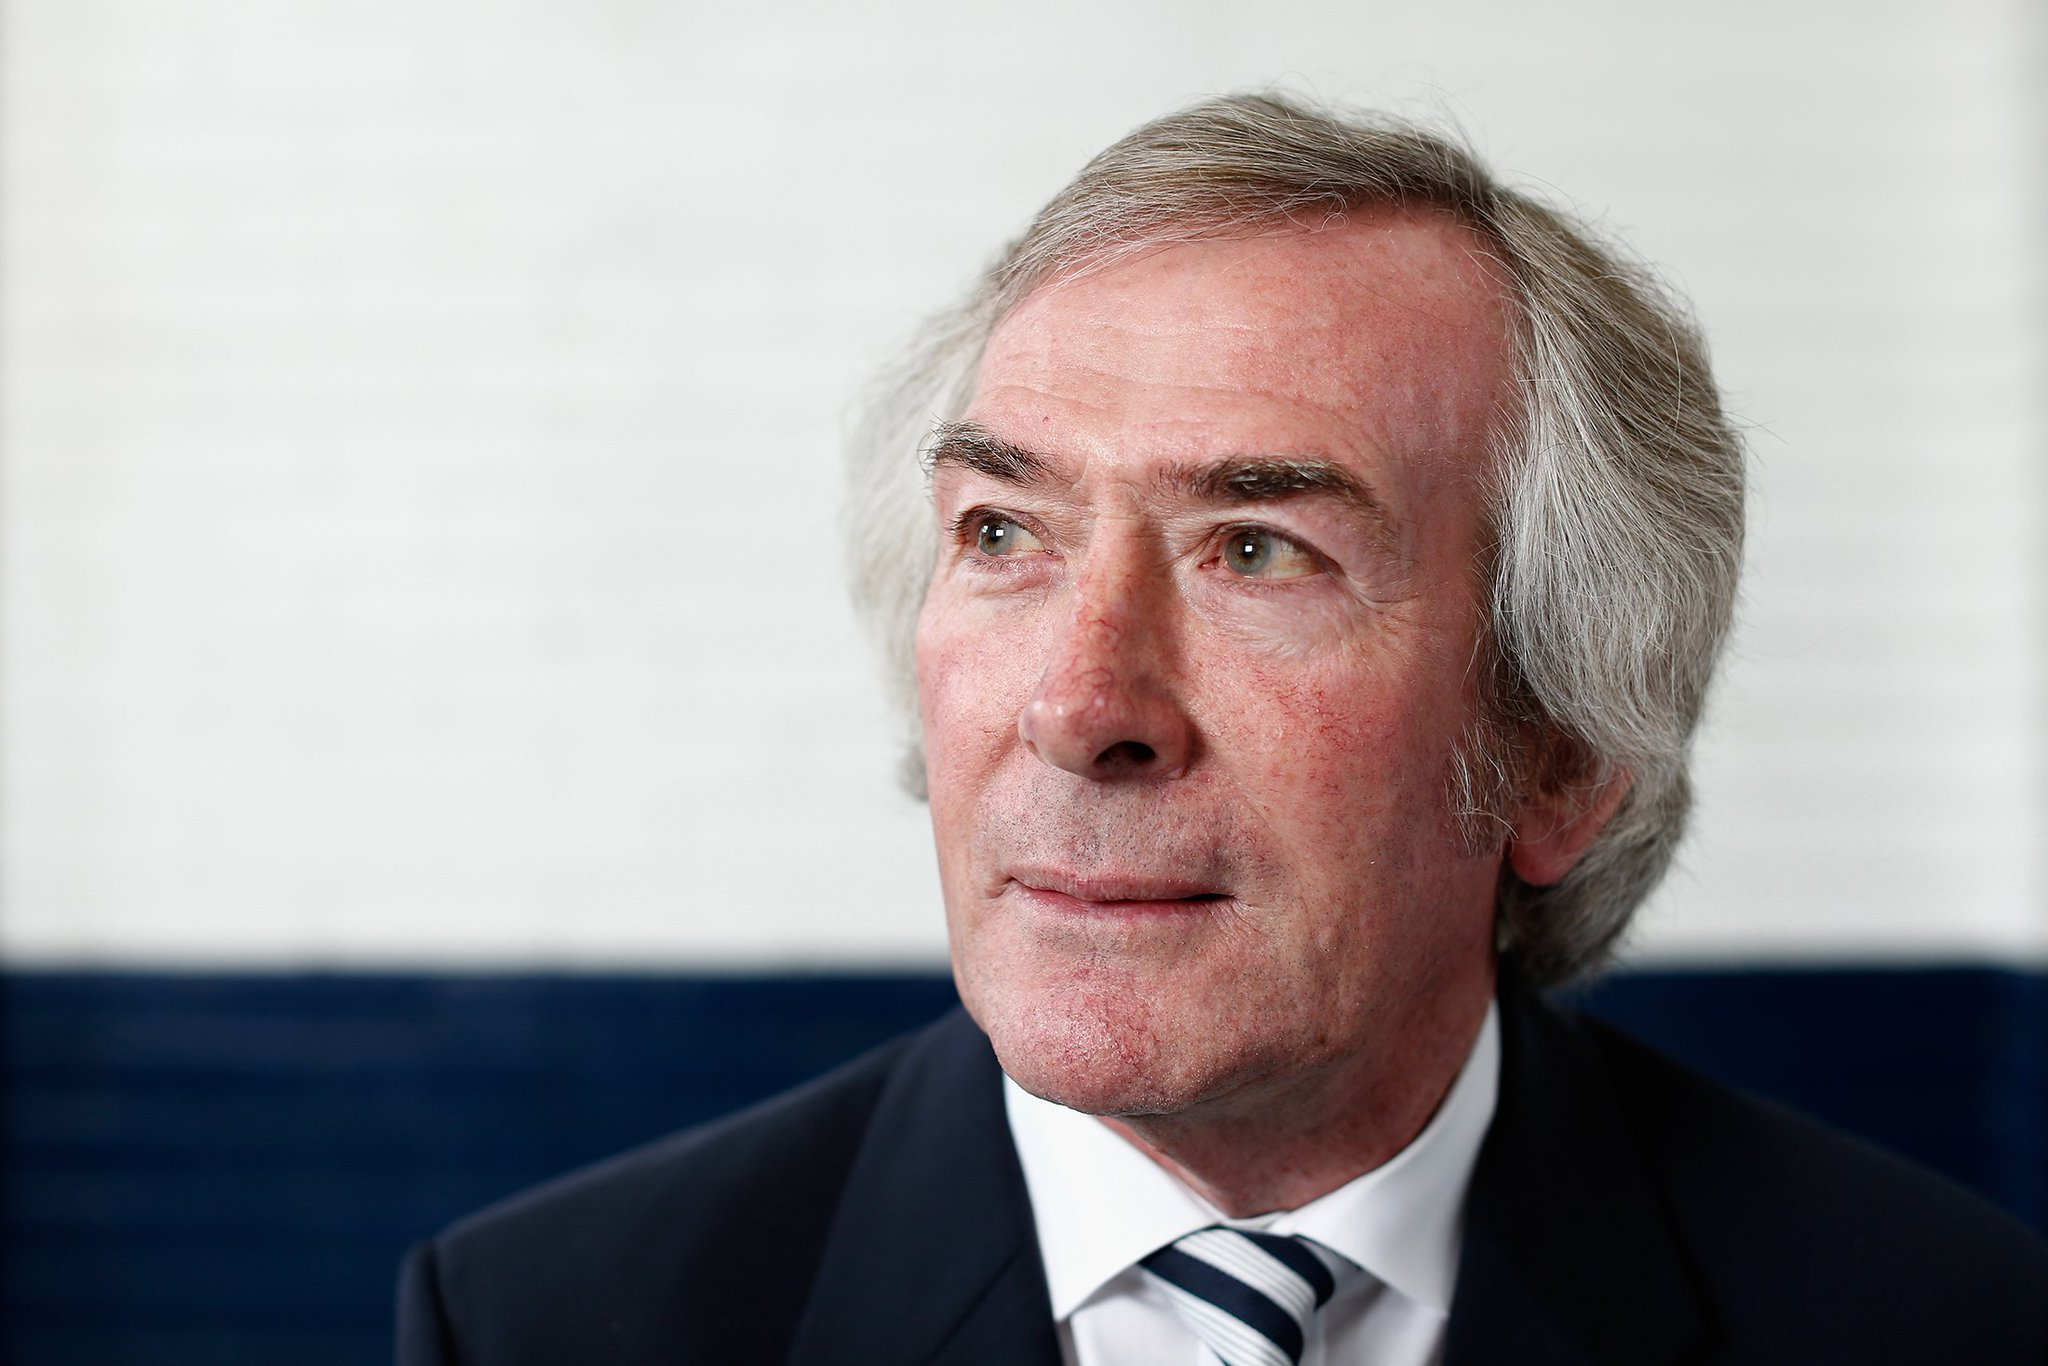 Happy birthday to the great Pat Jennings!